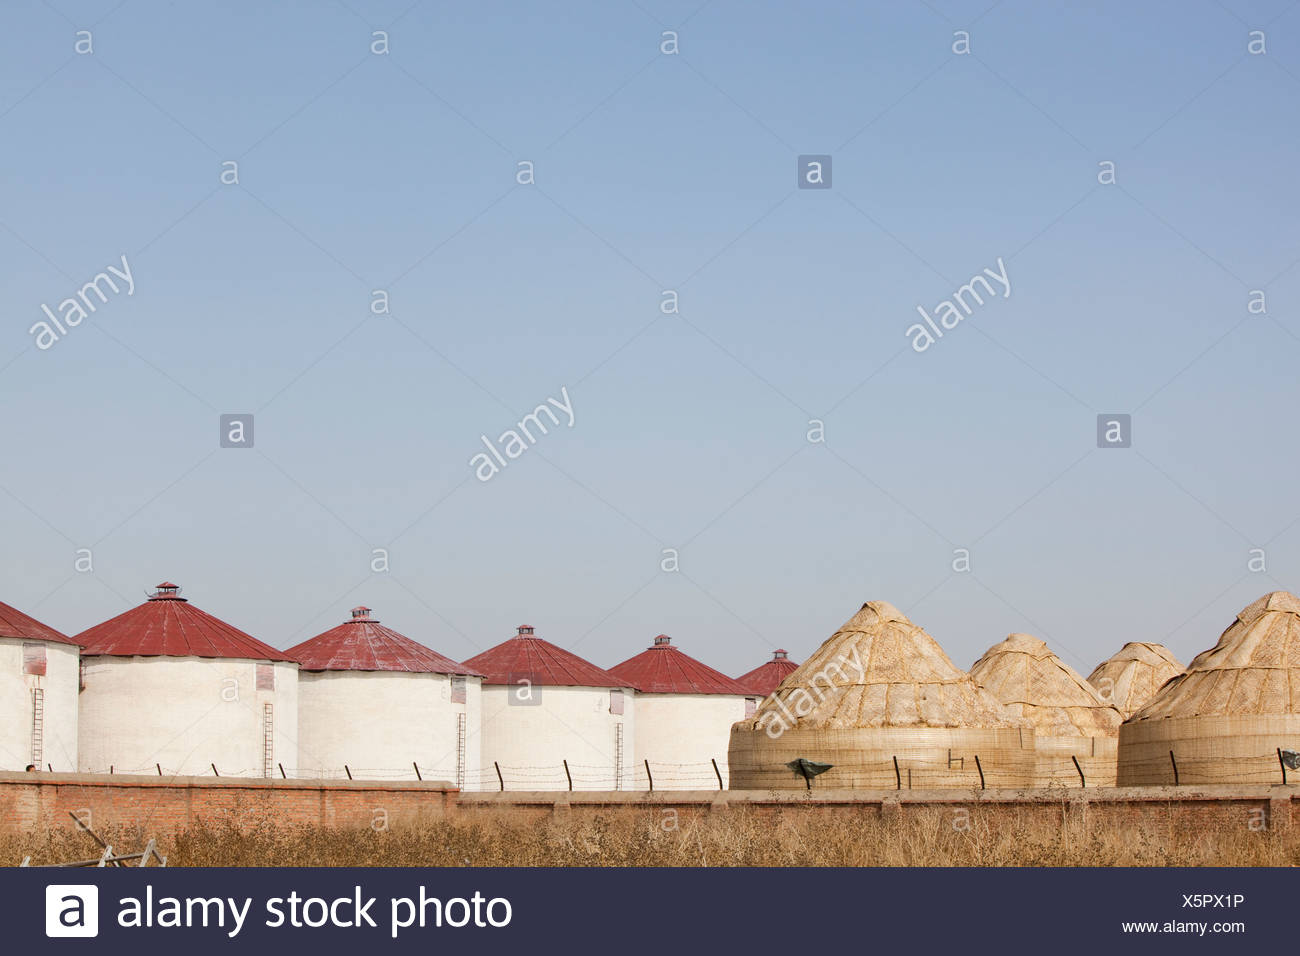 A food depot in Inner Mongolia. Climate change induced drought and desertification is reducing crop yields in the area. - Stock Image